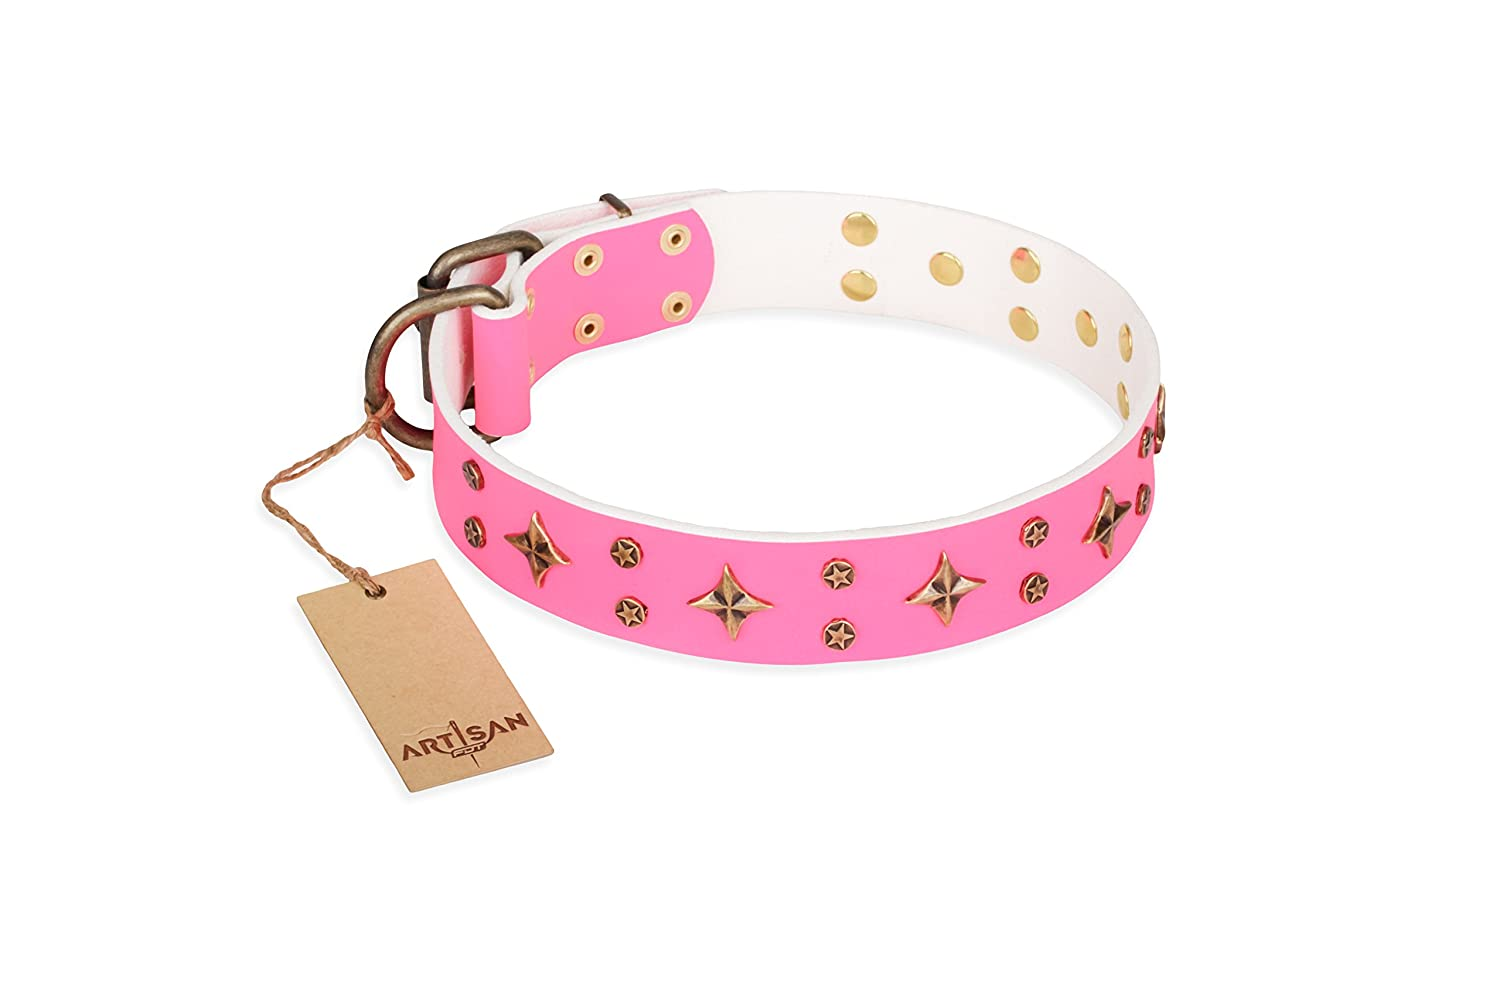 36 inch 36 inch Pink Leather Dog Collar with Brass Plated and Fake Silver Decor  Trendy Stars  Handcrafted by Artisan